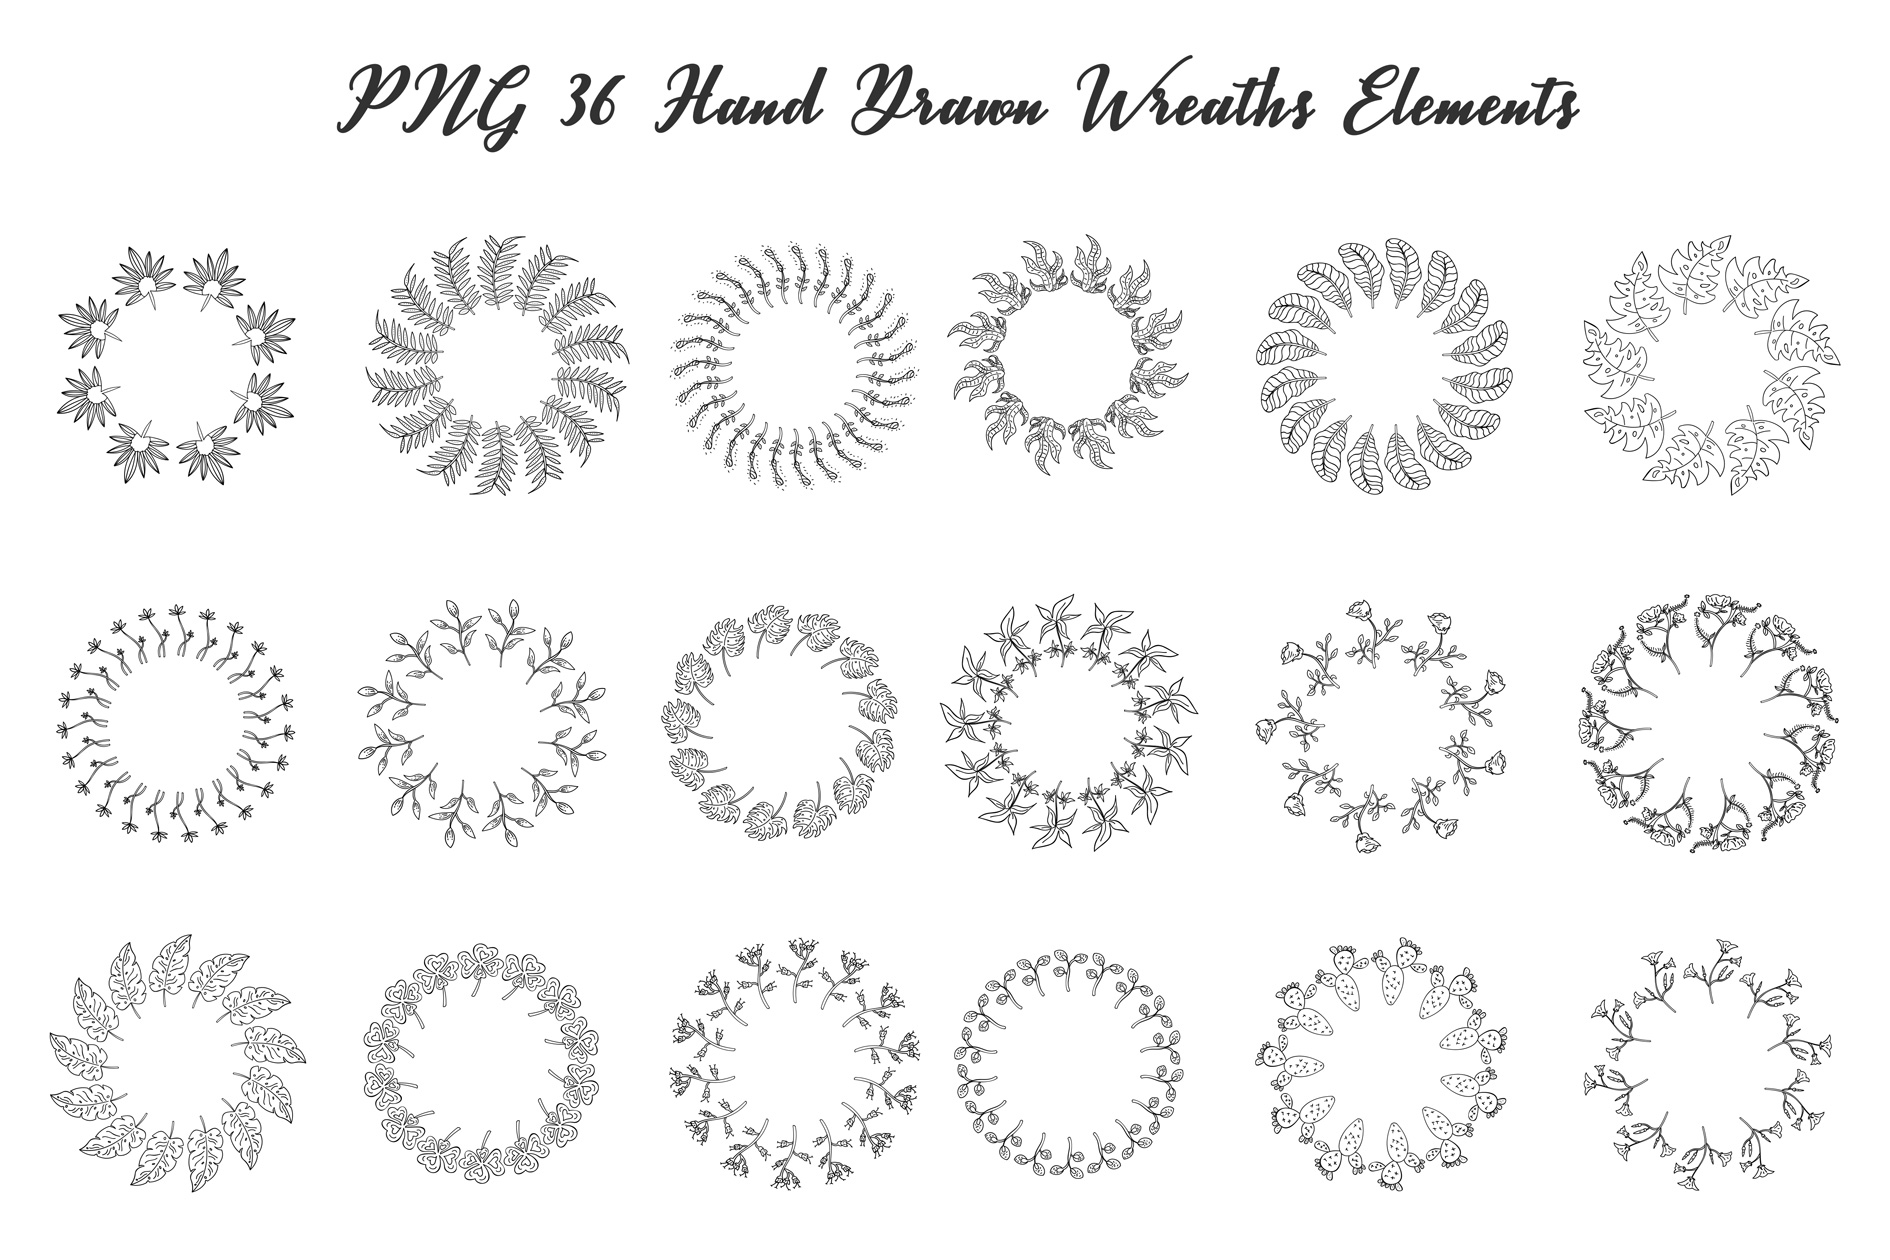 72 Hand Drawn Floral Wreaths example image 4